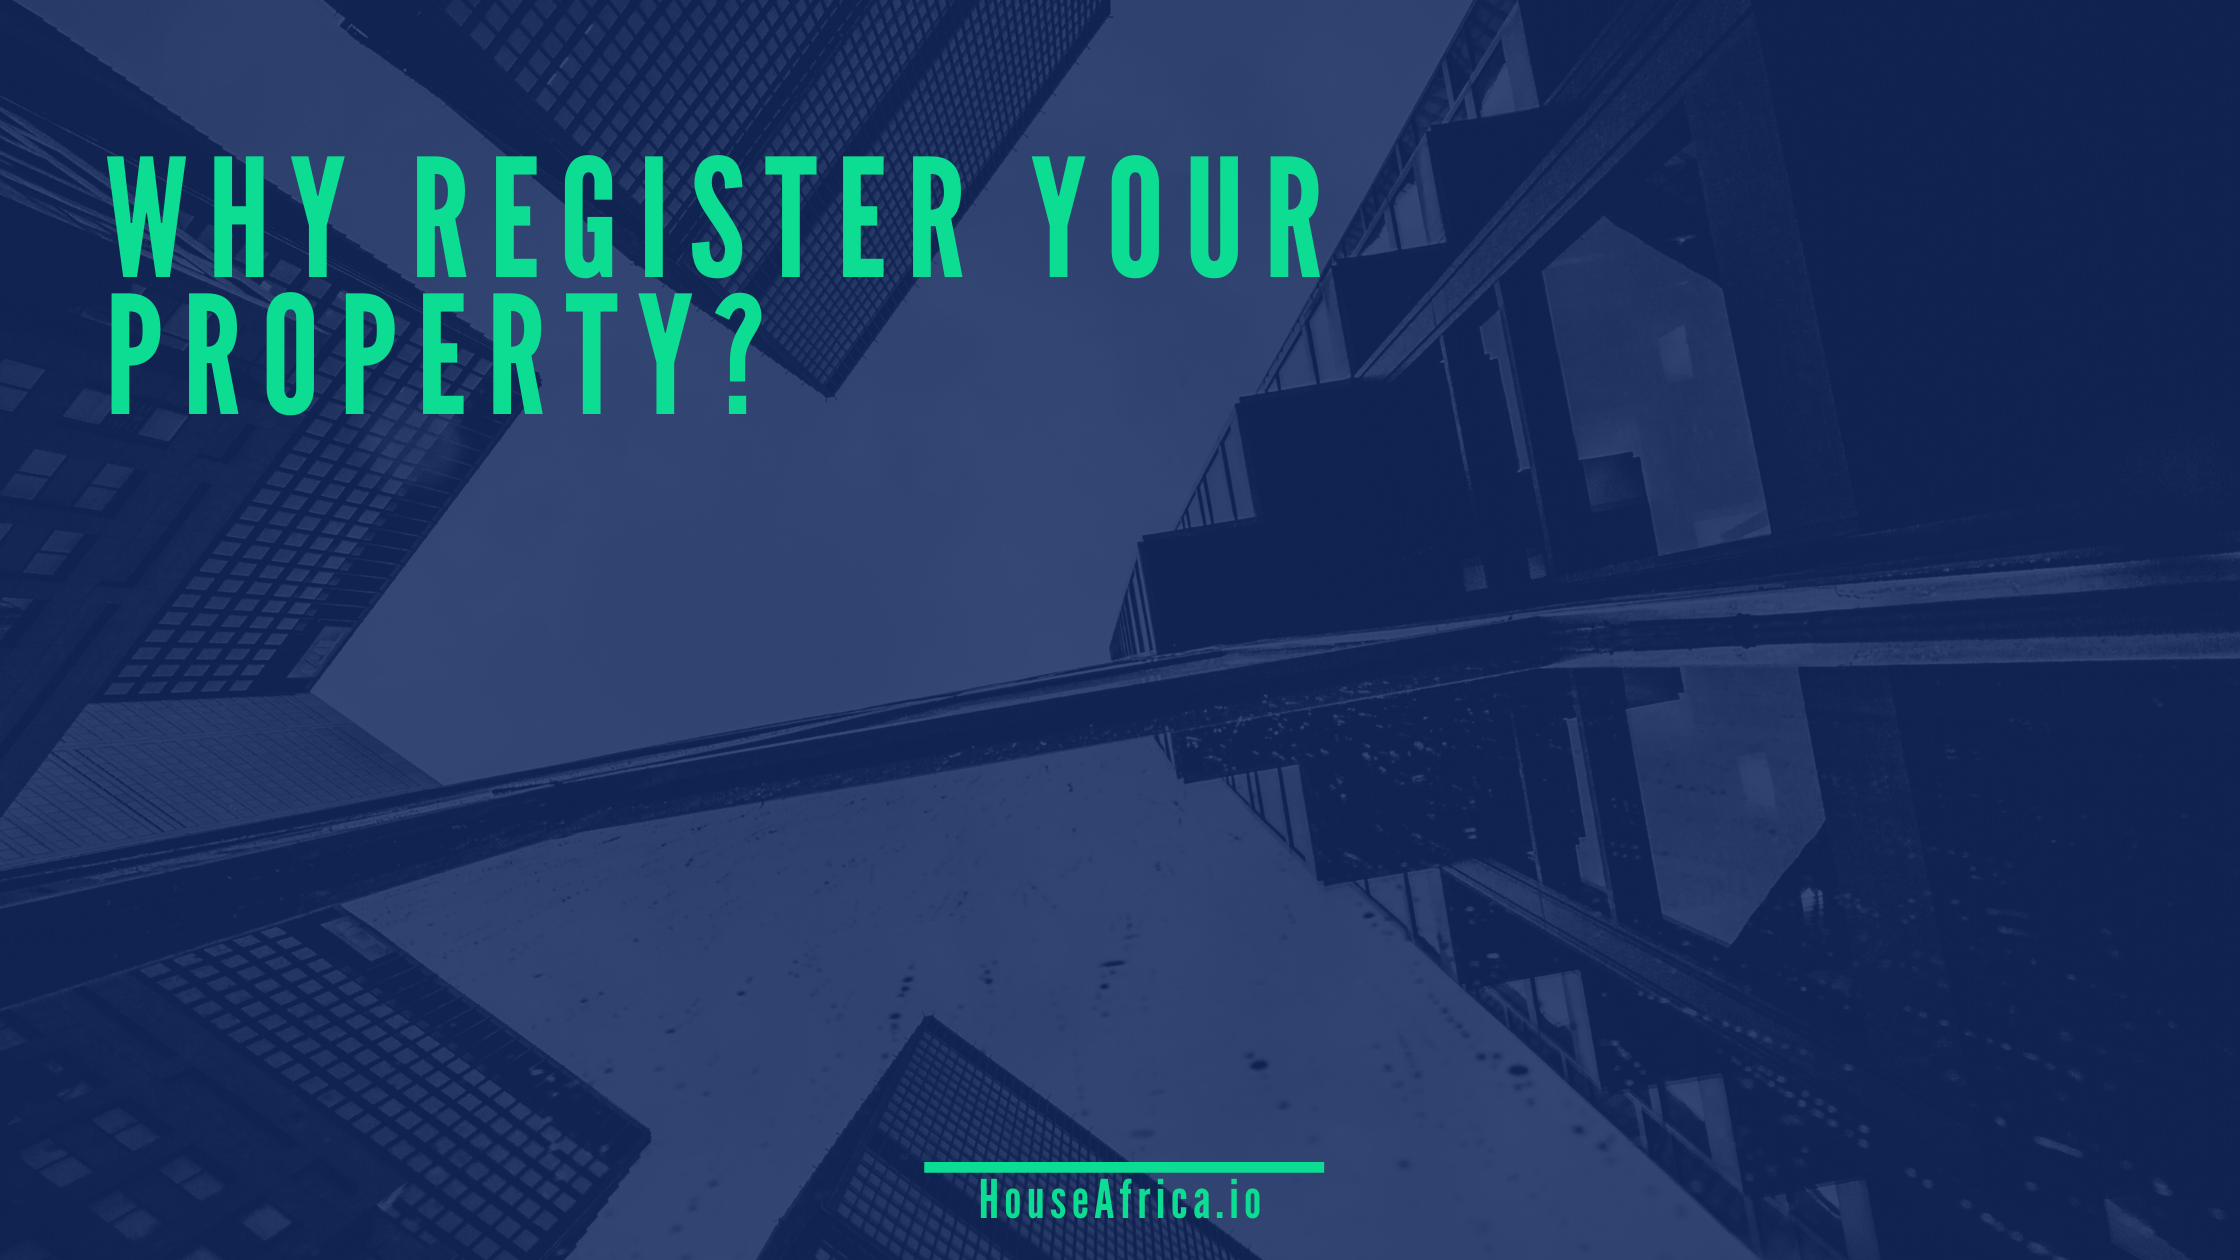 Why Register Your Property?